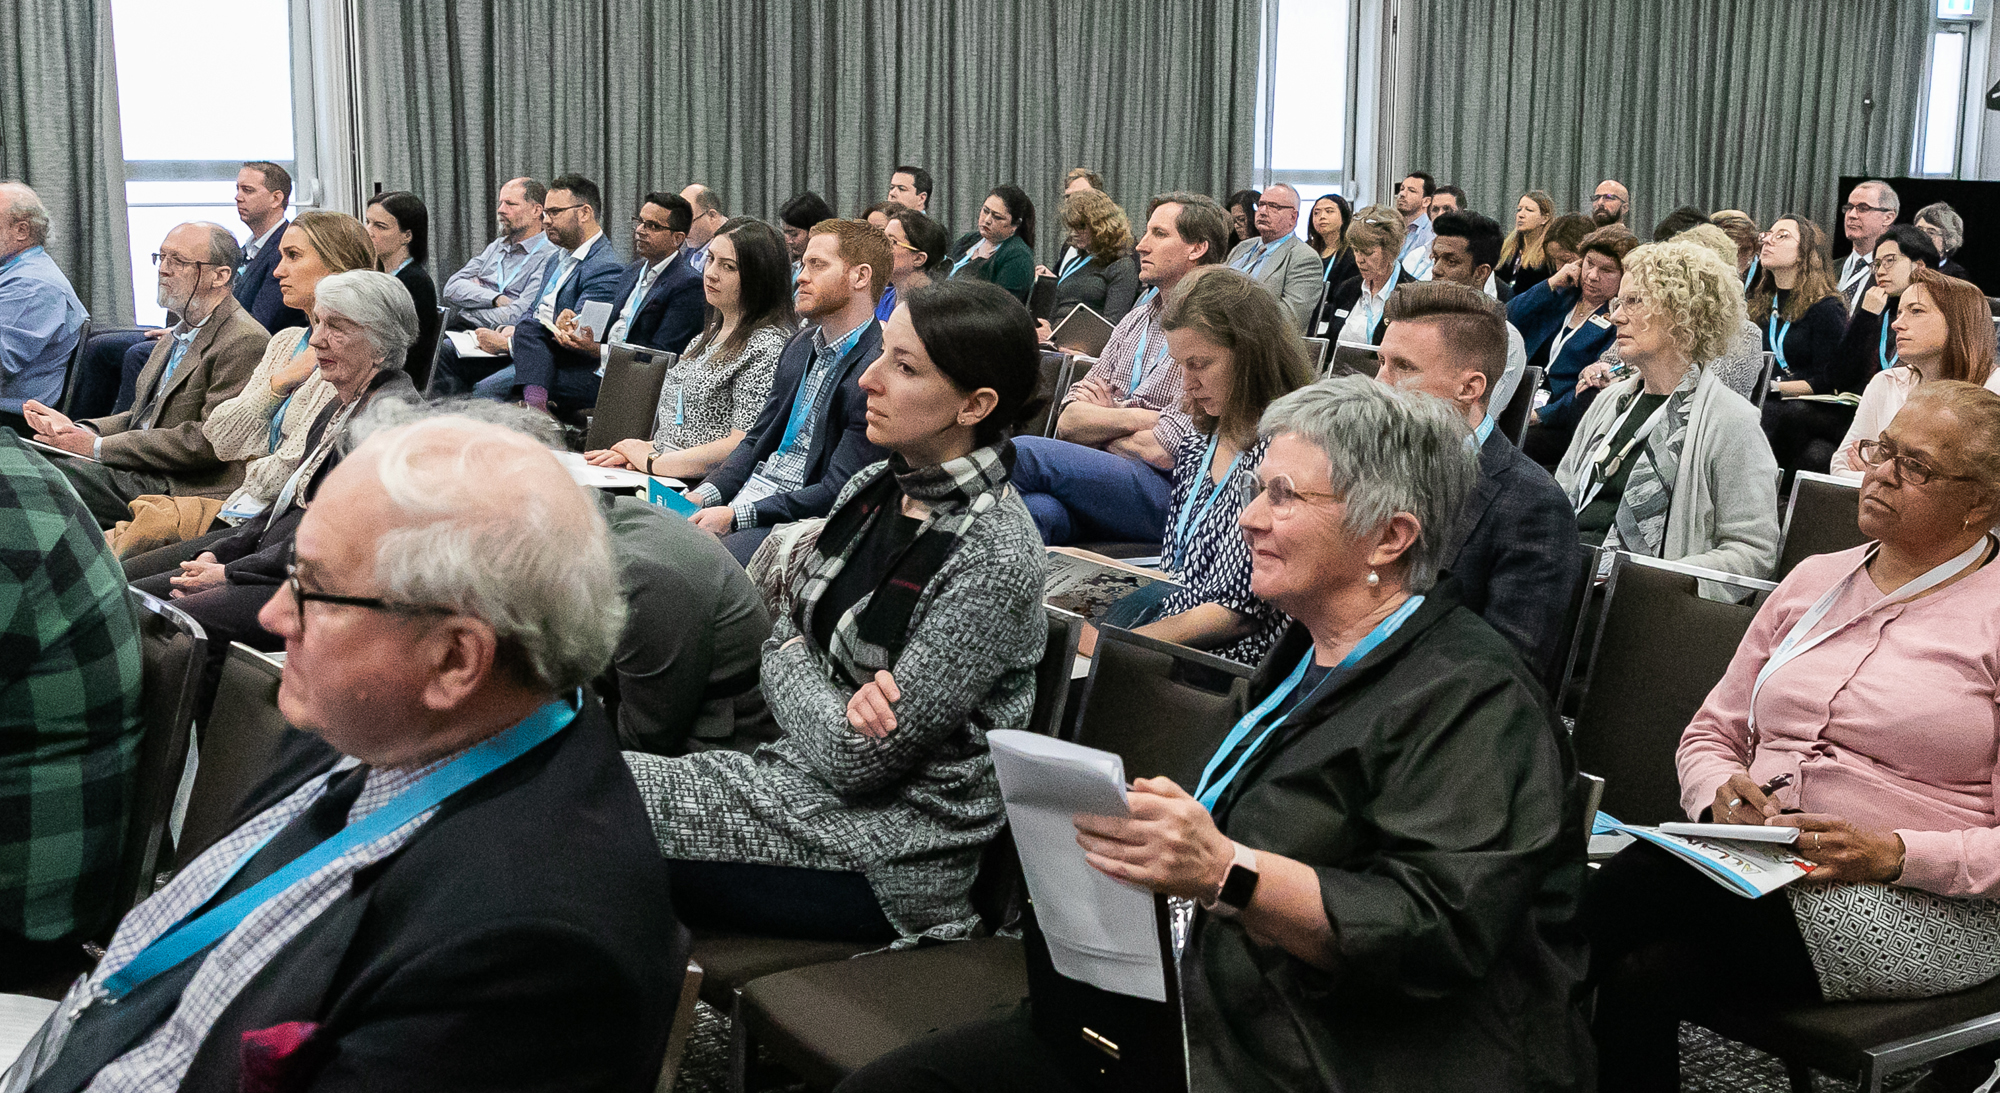 ACCANect 2019: Engaged audience